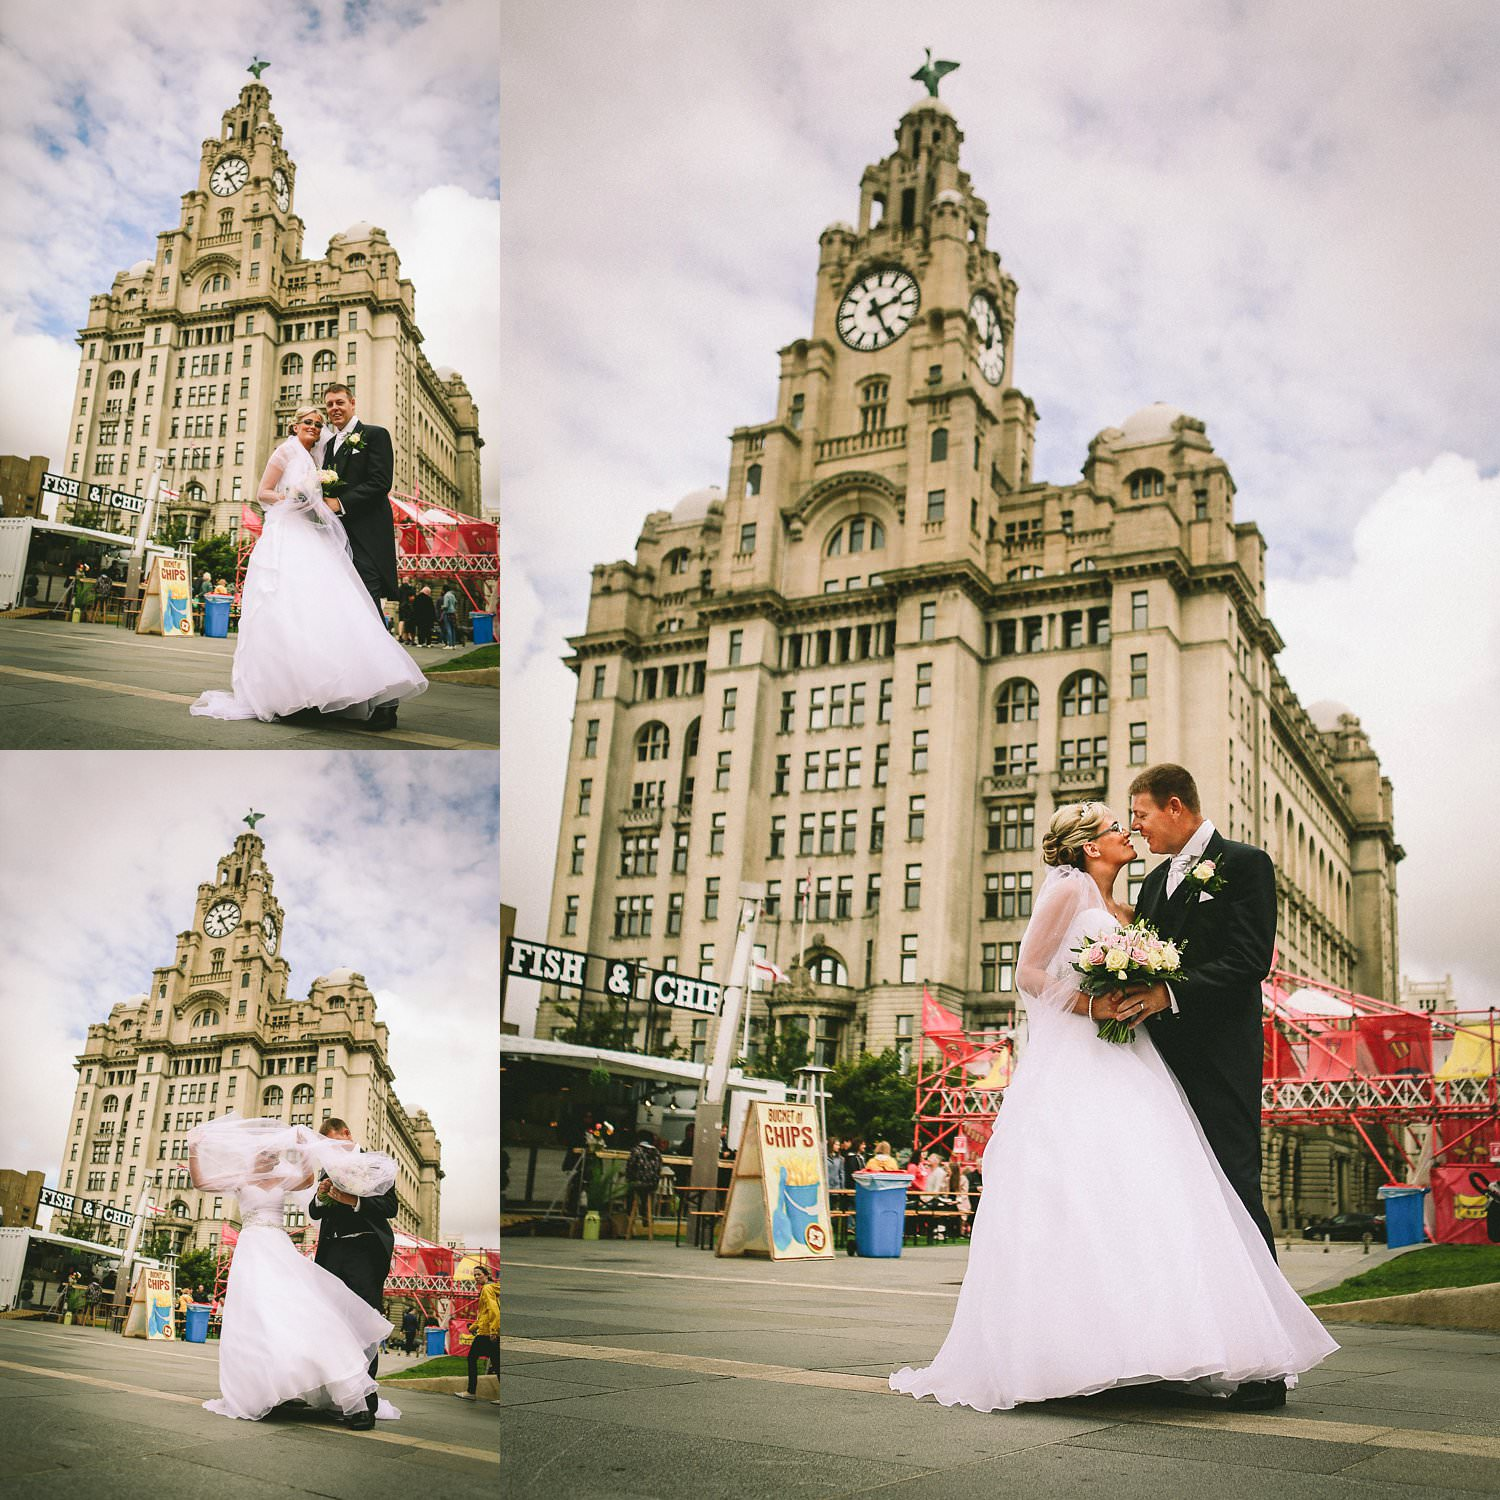 bride and groom Liverpool pair head on wedding day in front of Liver Building